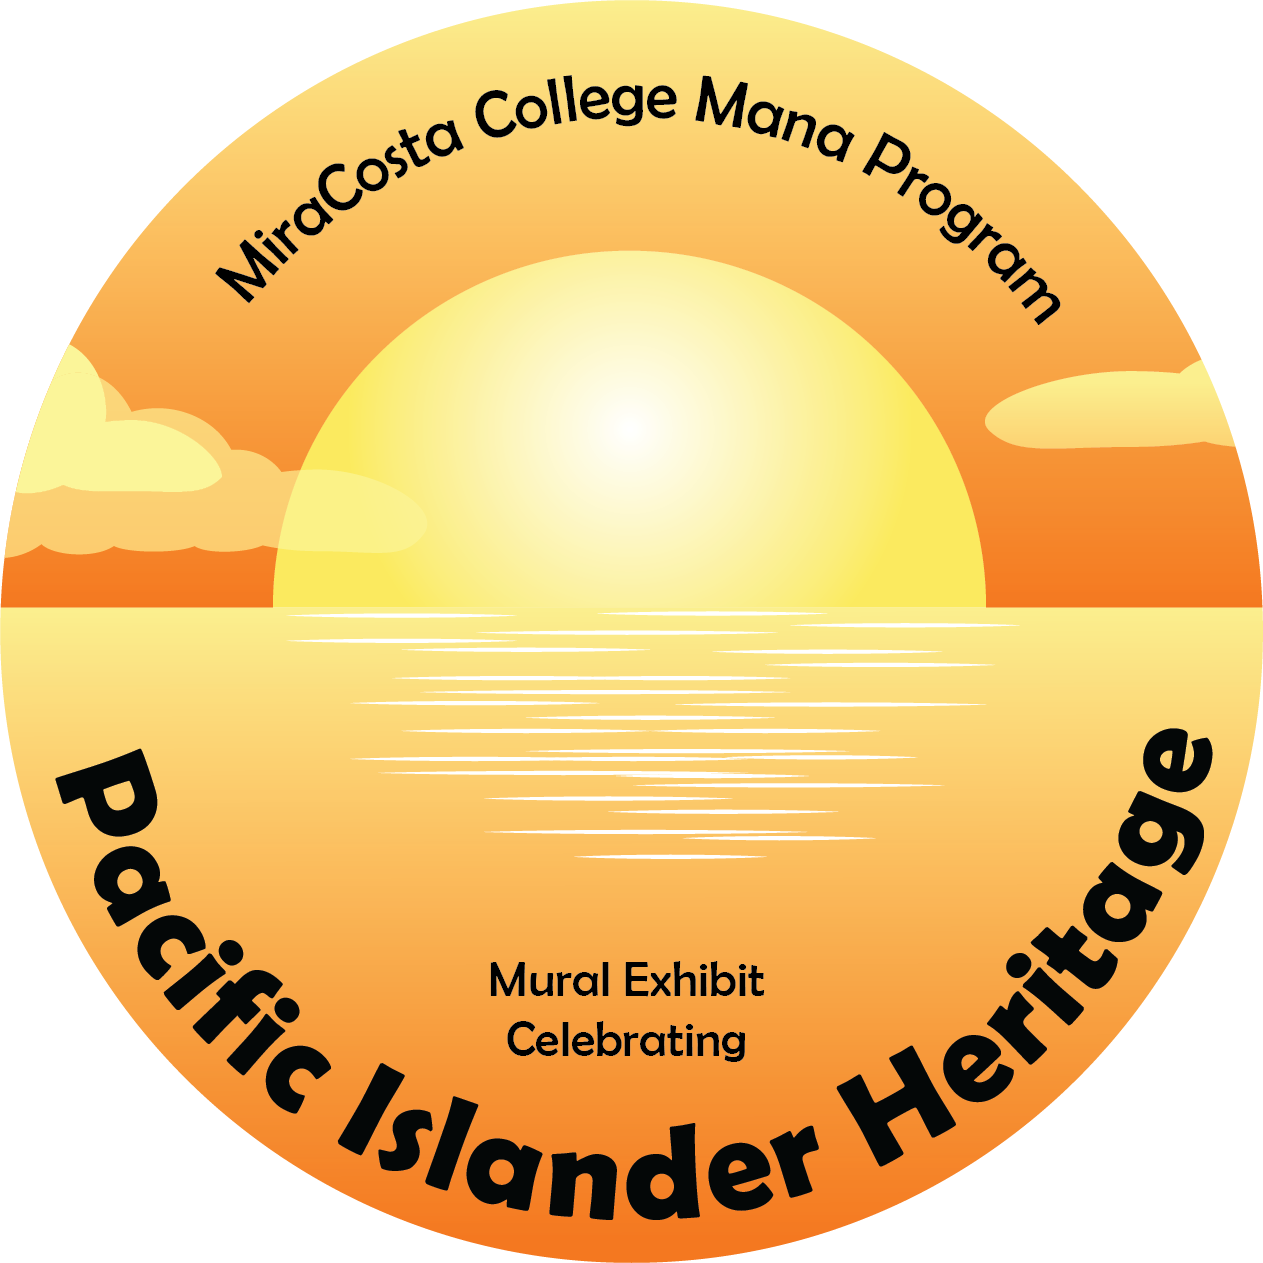 MiraCosta College Mana Program - Exhibit Celebrating Pacific Islander Heritage